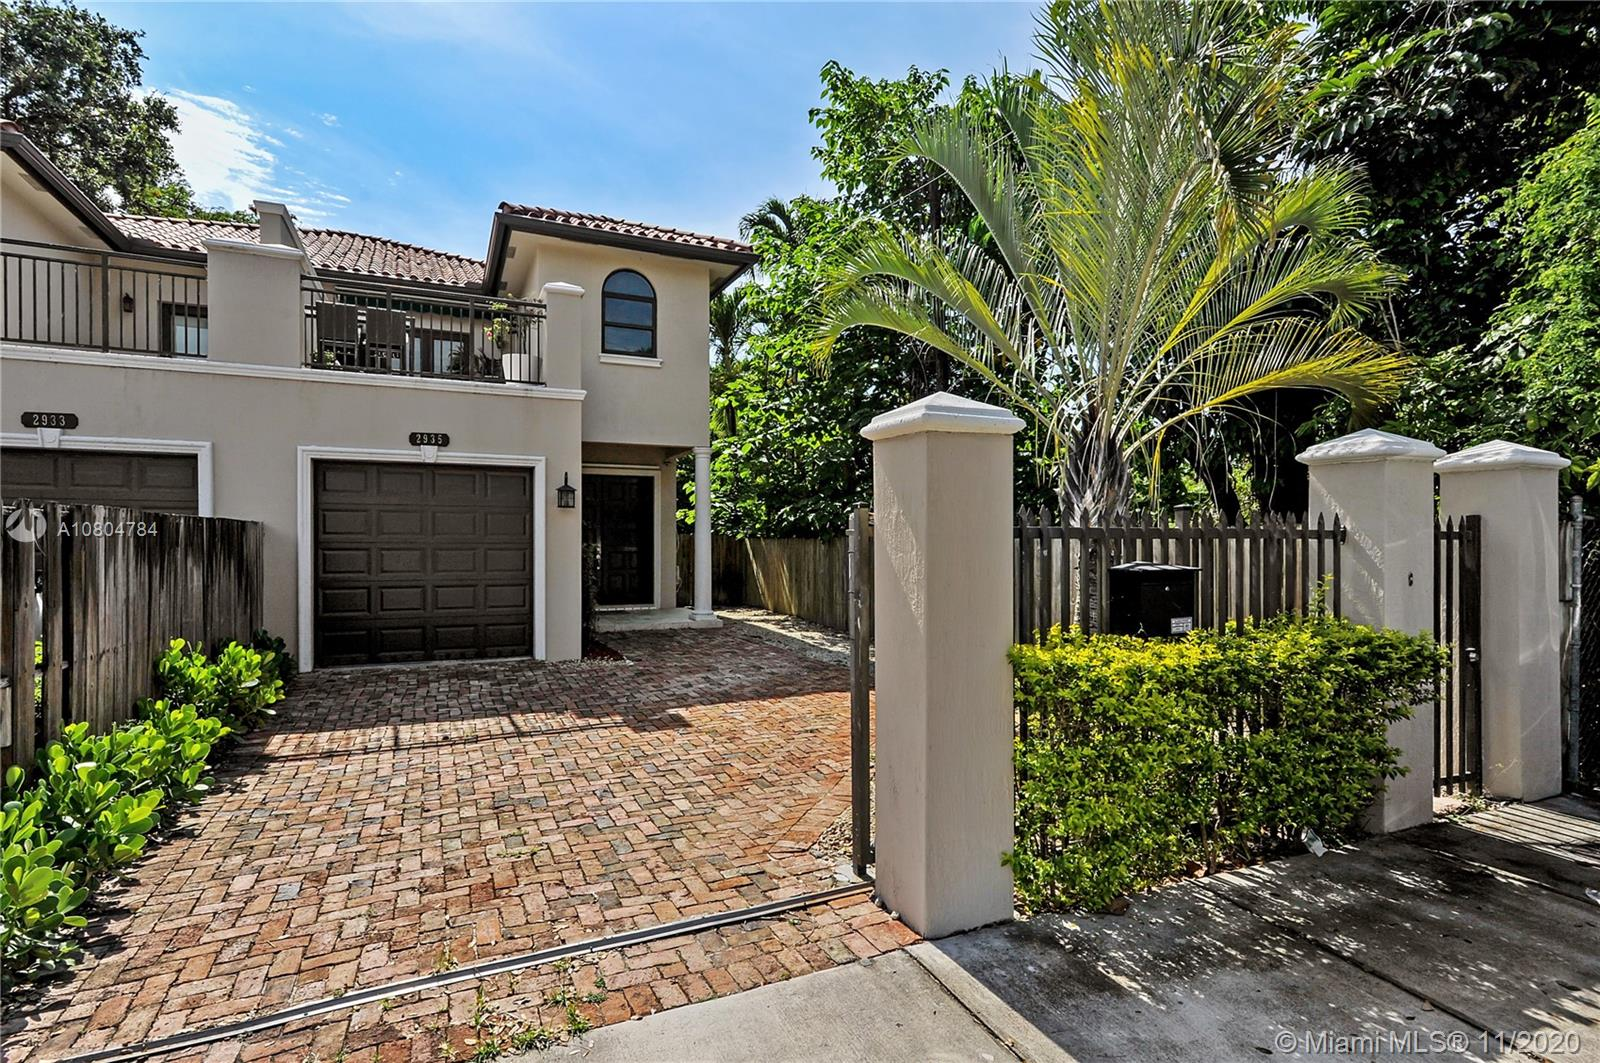 Gorgeous luxury Townhome elegantly located in the village of Coconut Grove. This 3 Bed 2.5 Bath home features a private electric gate entrance, one car garage, saturnia marble floors through-out, and high impact windows. 3 bedrooms upstairs including laundry facility and large master suite with balcony, perfect for evening sunsets. Downstairs you will find spacious common areas boasting 10' ceilings and well situated windows facilitating plenty of natural lighting. Step outback to the private covered terrace and jacuzzi/spa surrounded by beautiful Chicago brick.